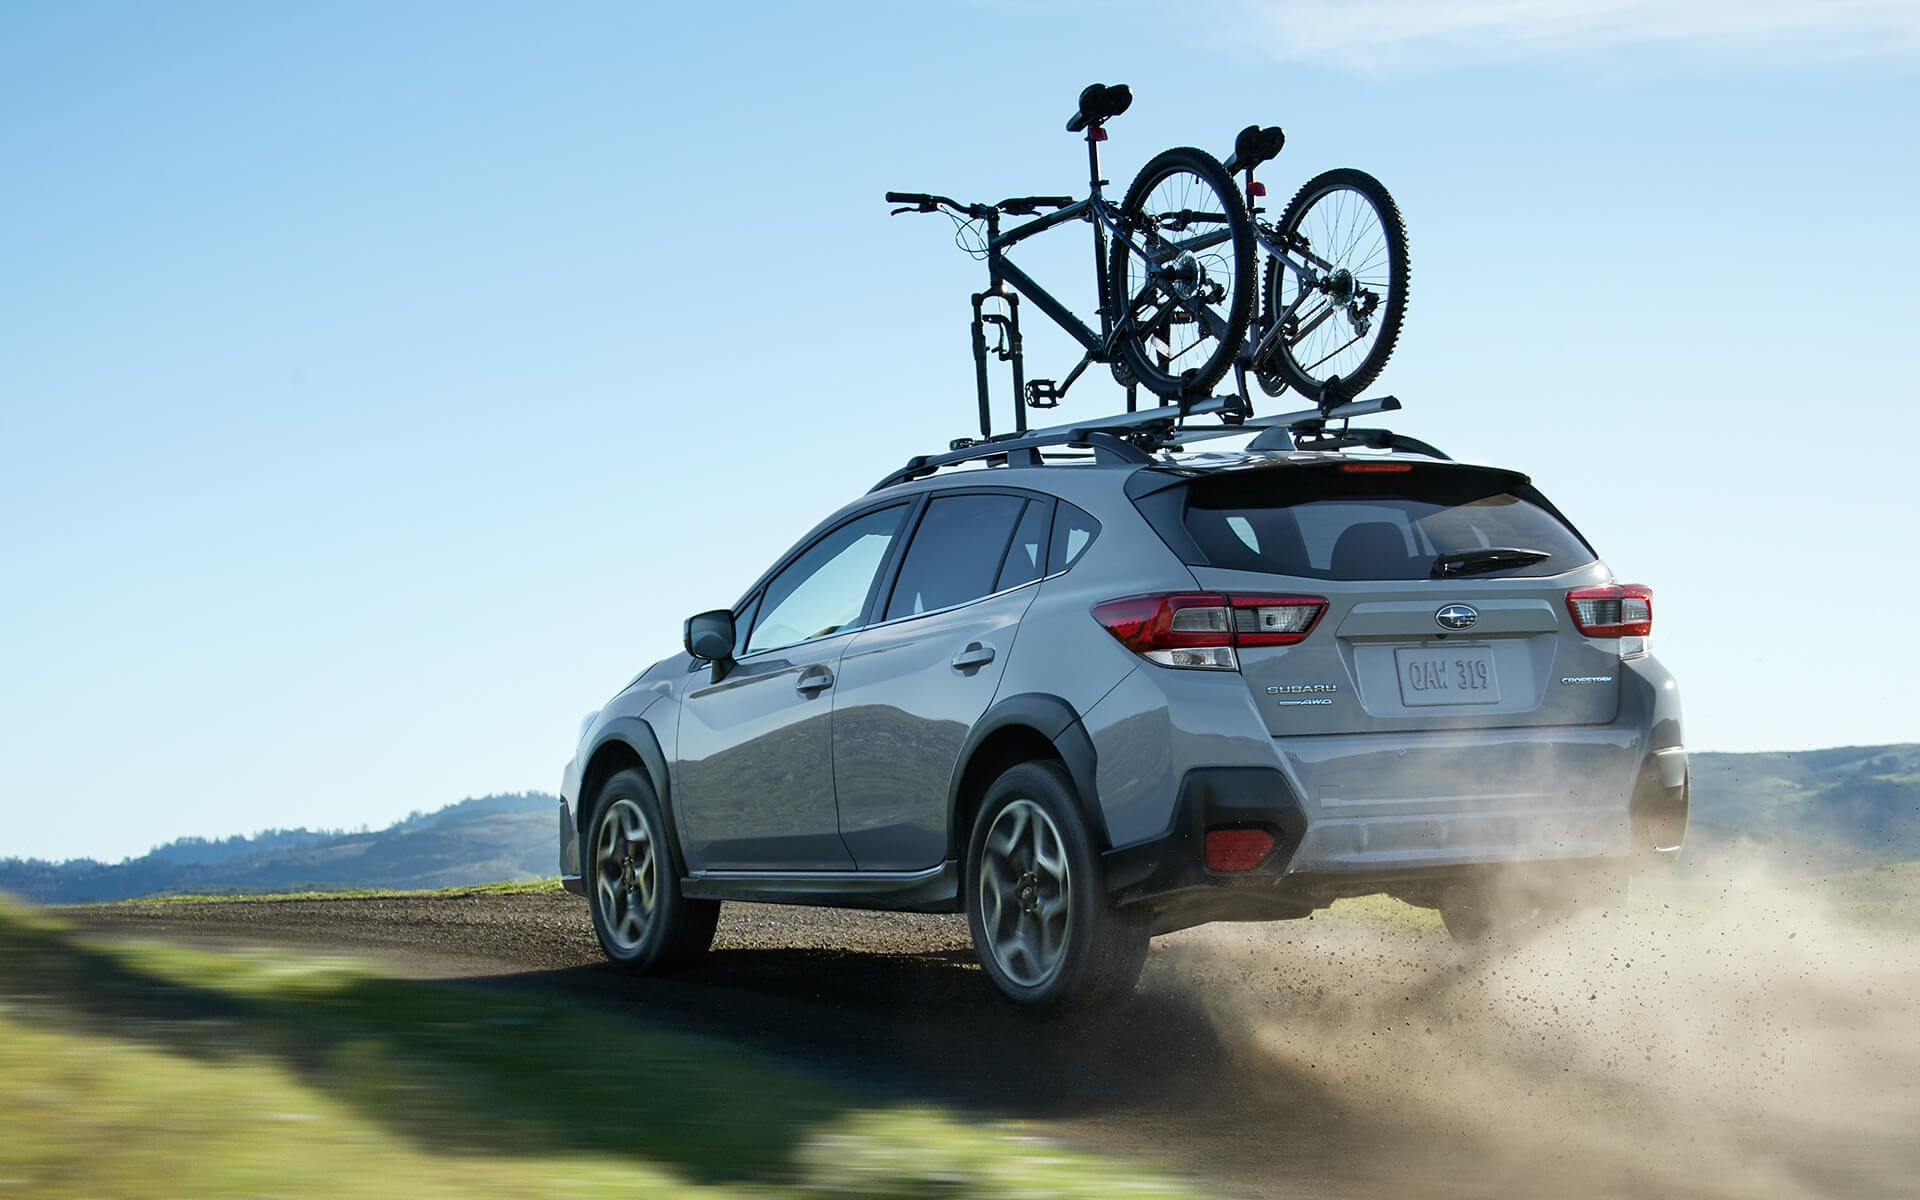 A 2020 Crosstrek with mountain bikes mounted to a rack accessory on its raised roof rails drives down a rough road in the wilderness.